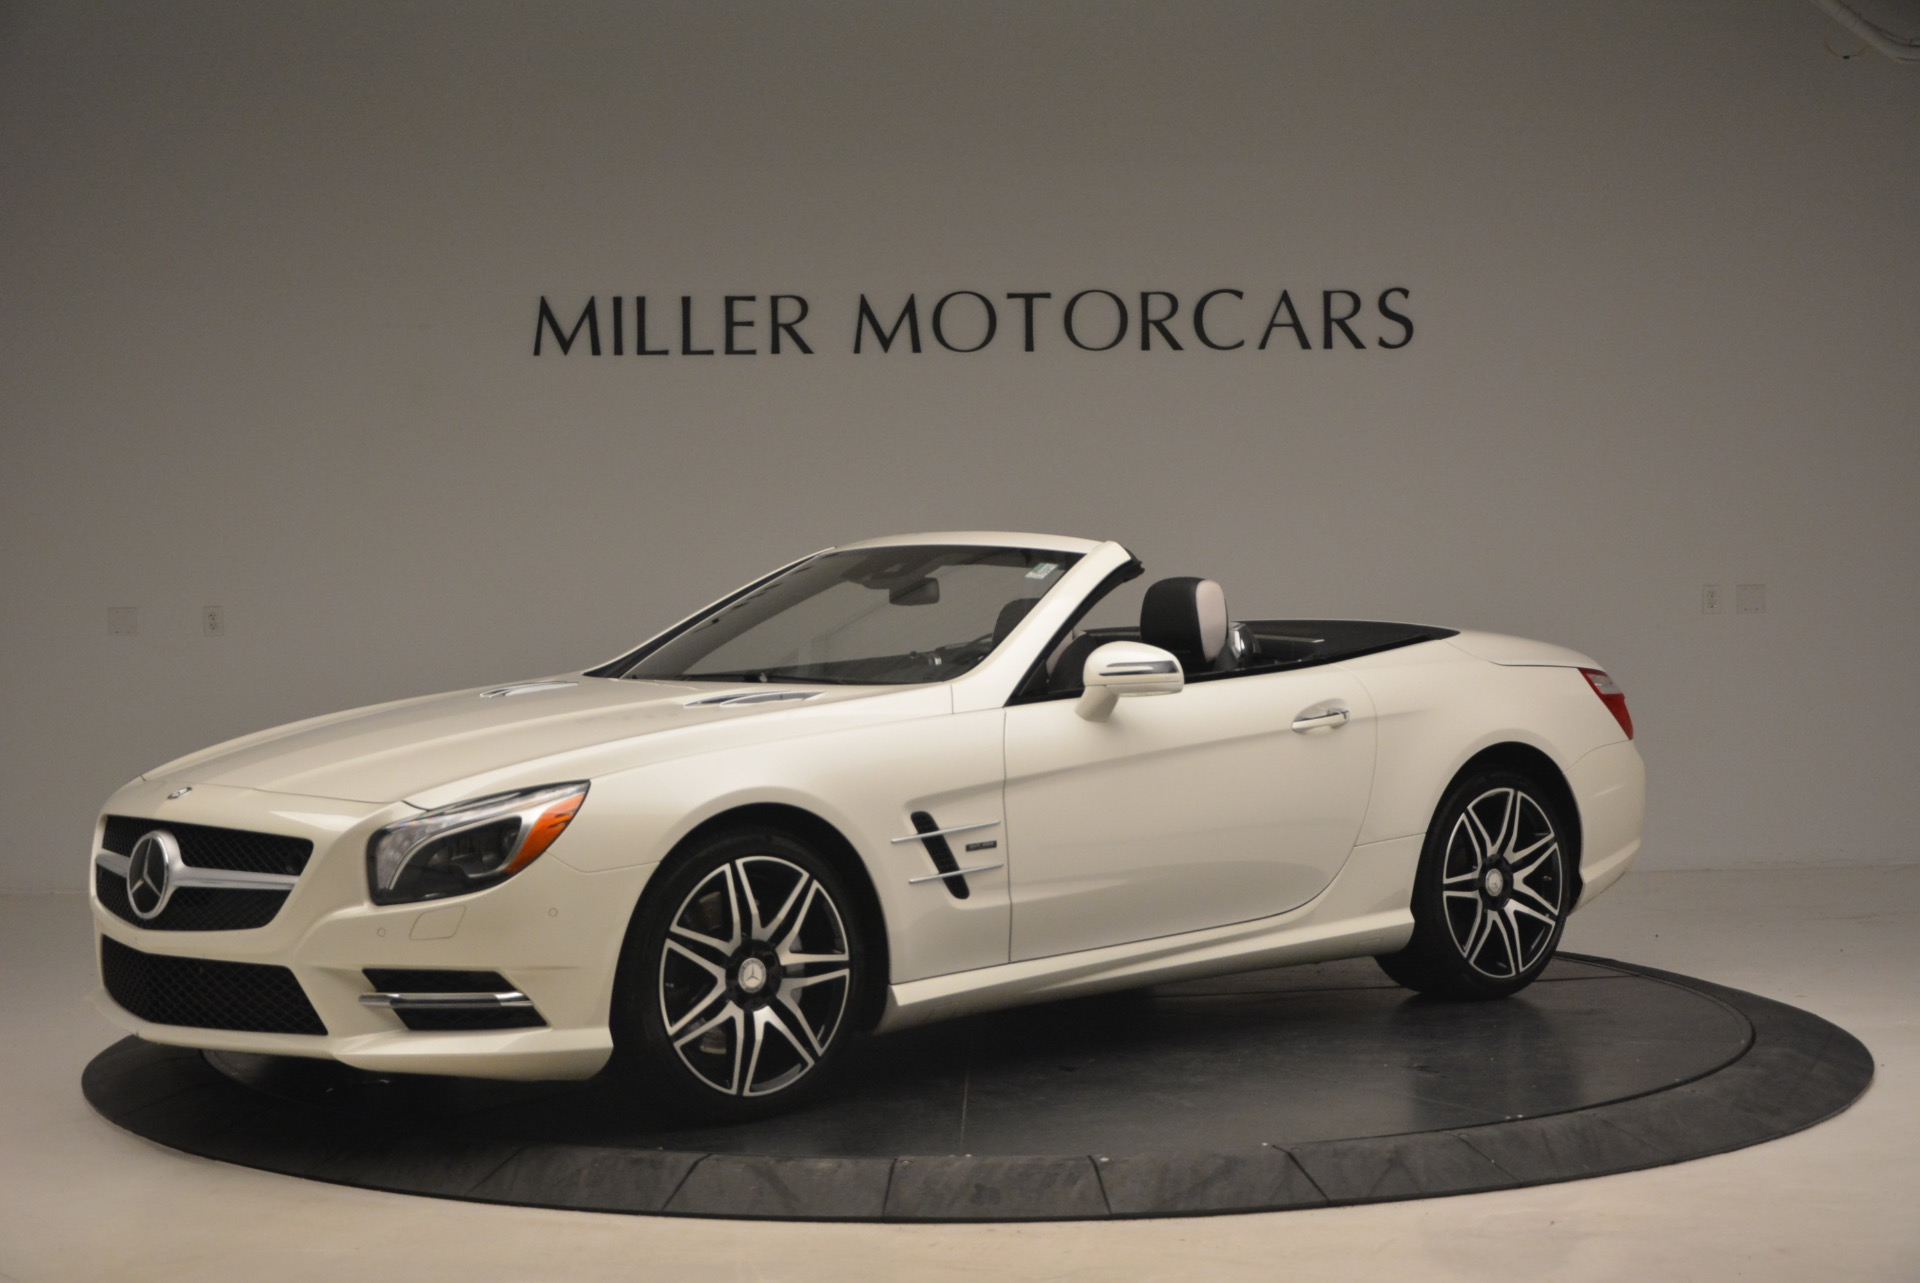 Used 2015 Mercedes Benz SL-Class SL 550 For Sale In Greenwich, CT 1261_p2